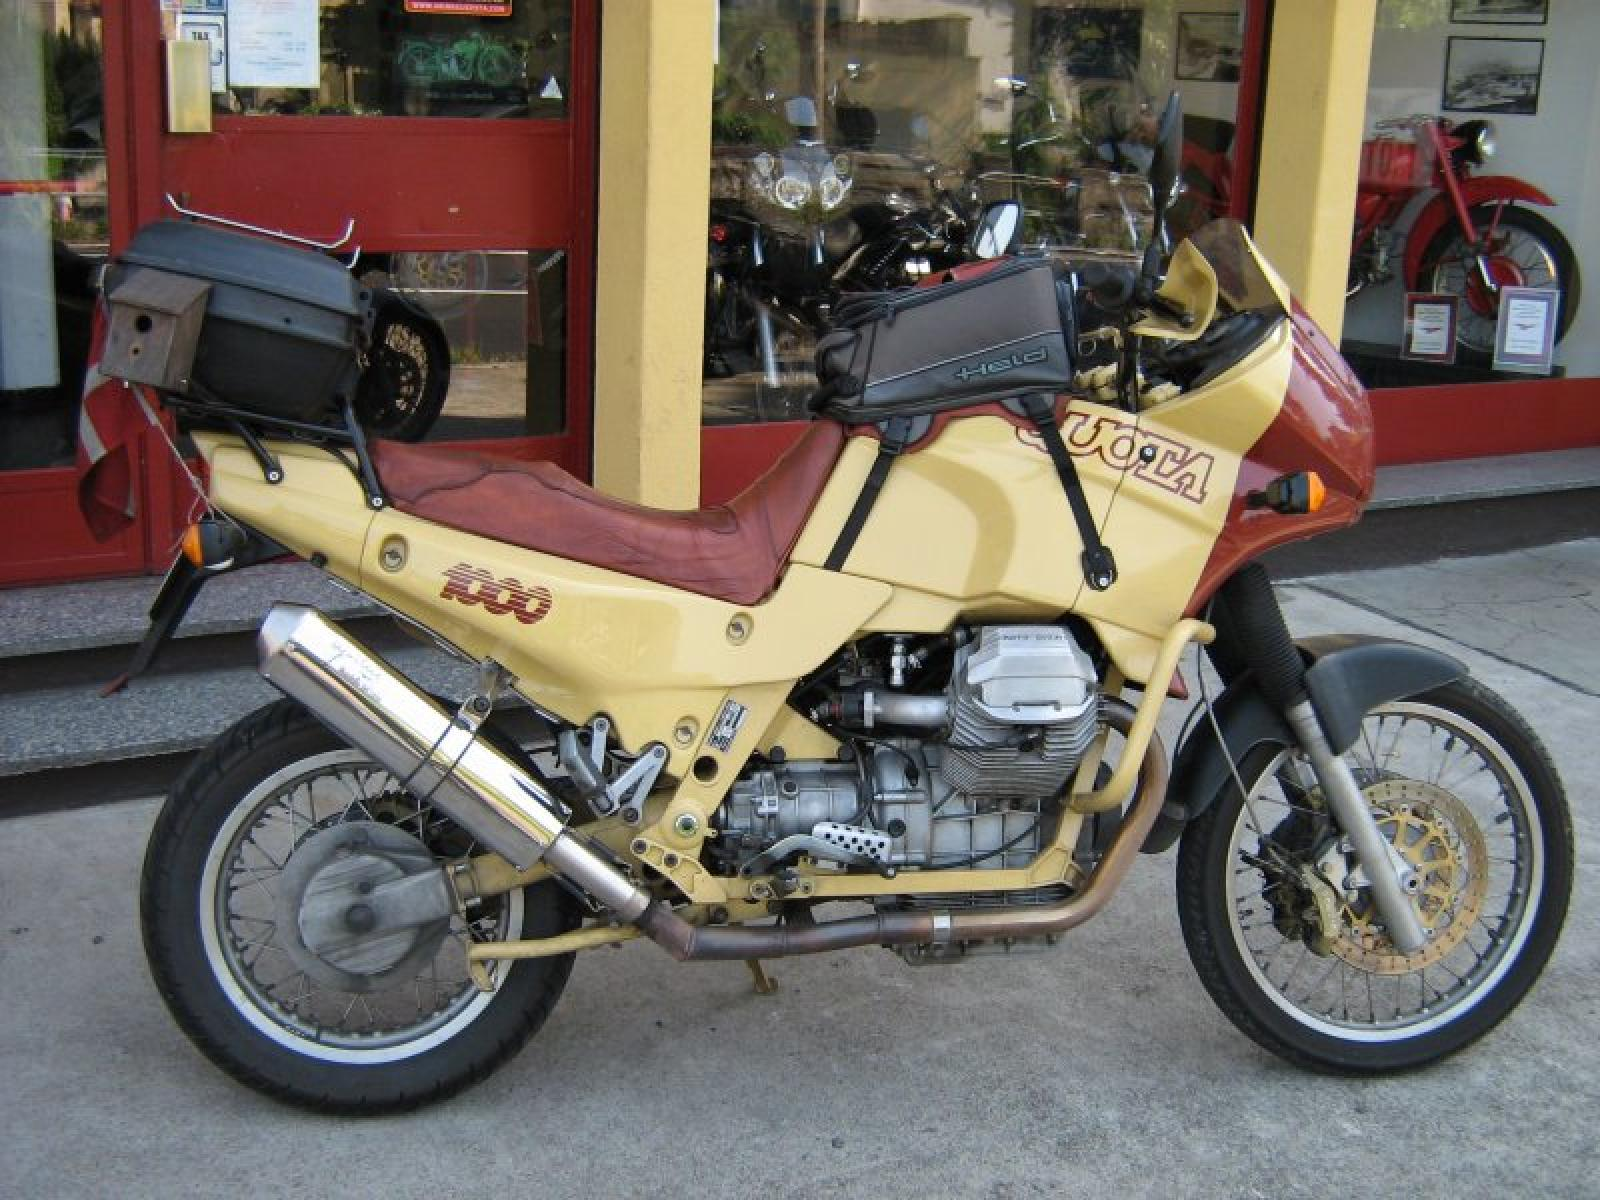 Moto Guzzi Quota 1000 images #109283